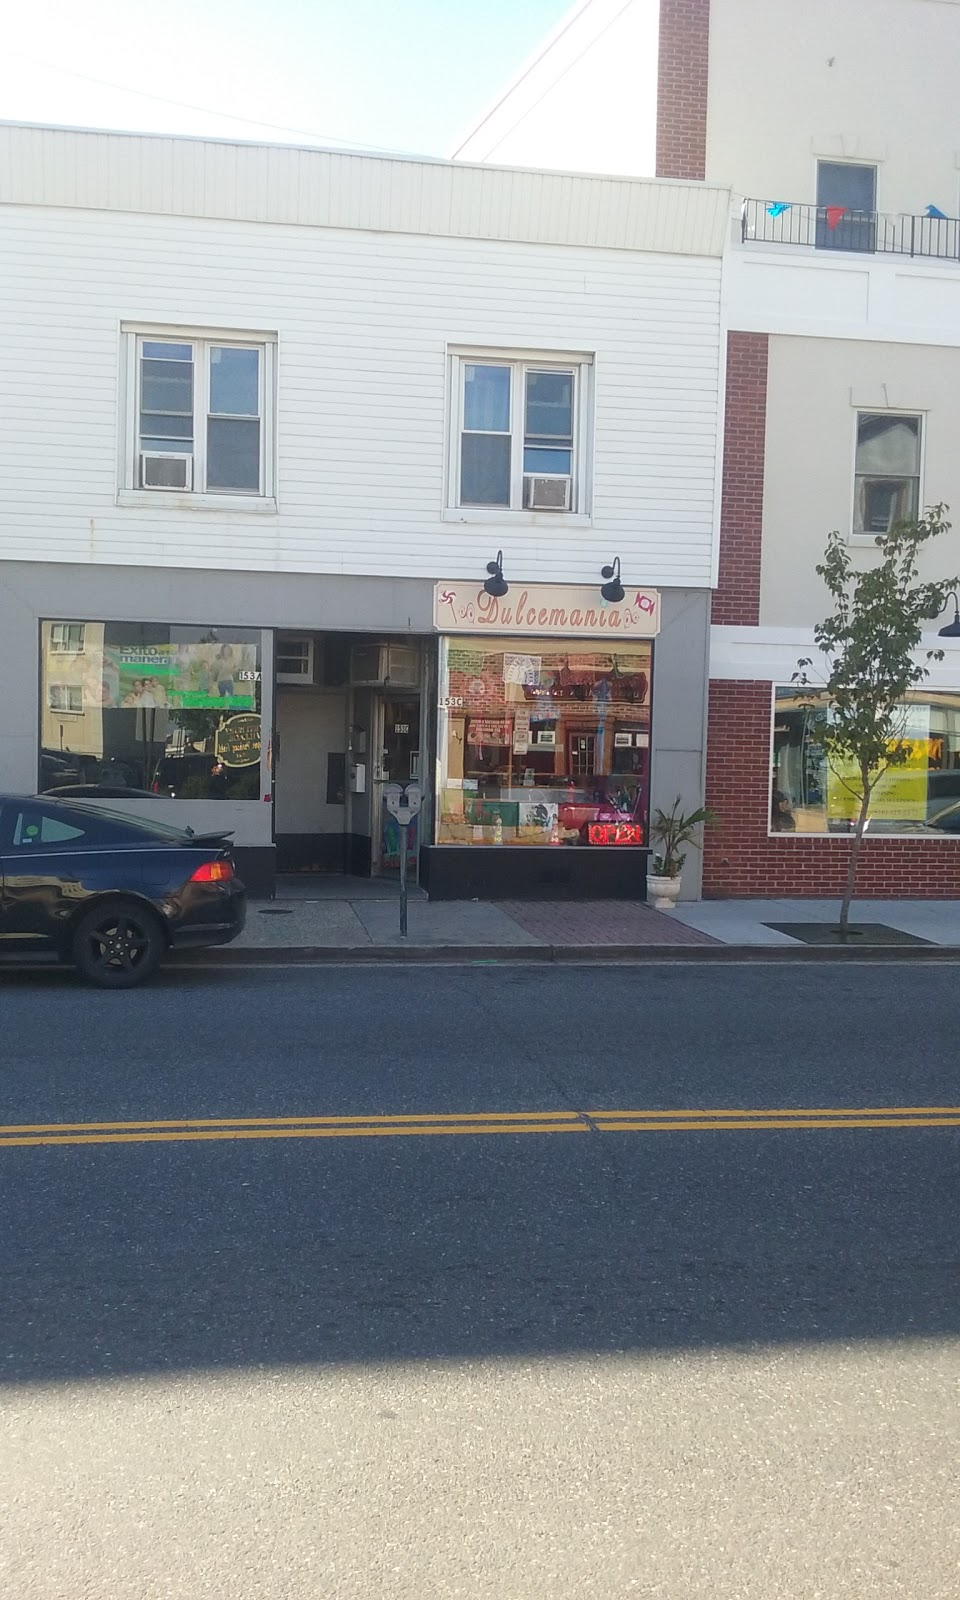 Photo of Dulcemania in Westbury City, New York, United States - 1 Picture of Point of interest, Establishment, Store, Home goods store